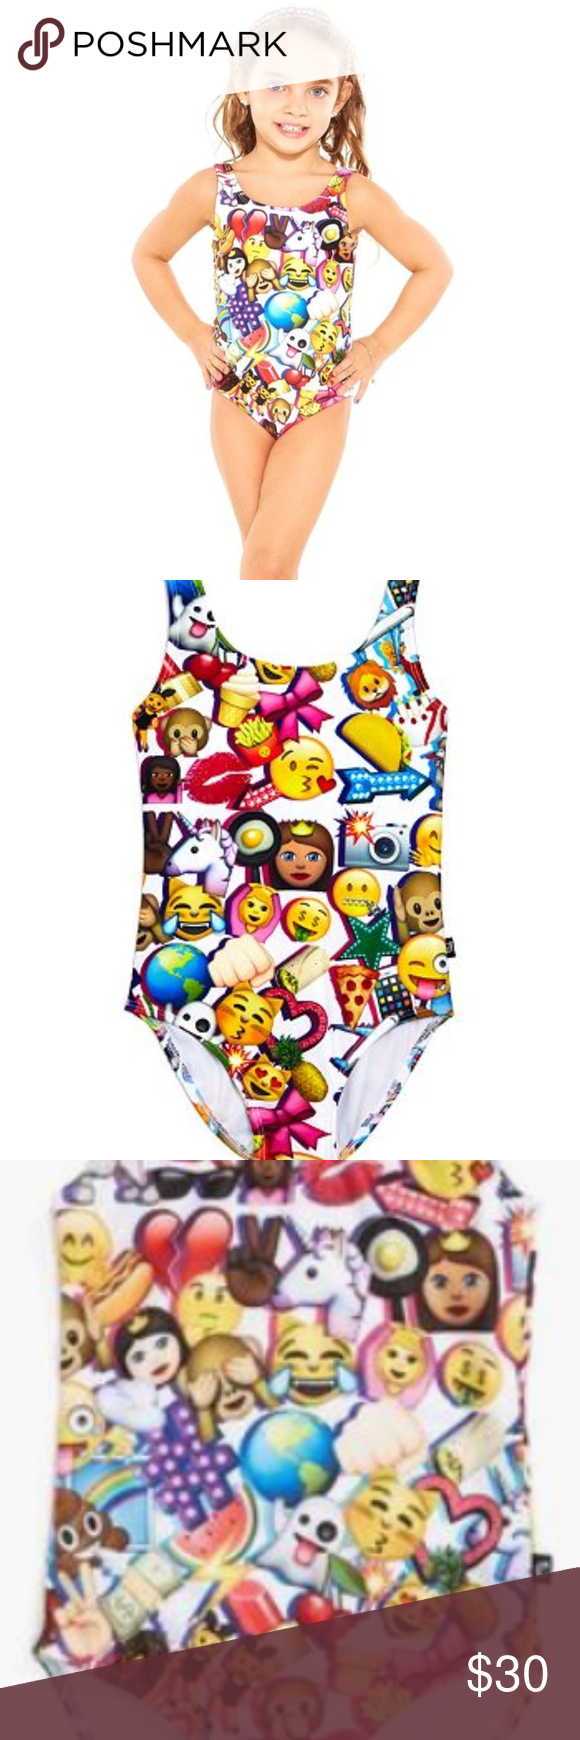 c3b6a209b9 Zara Terez Girls' Emoji Swimsuit NWT Kids Emoji Swimming Suit from Terez is  perfect for beach or pool with soft an amazing style.